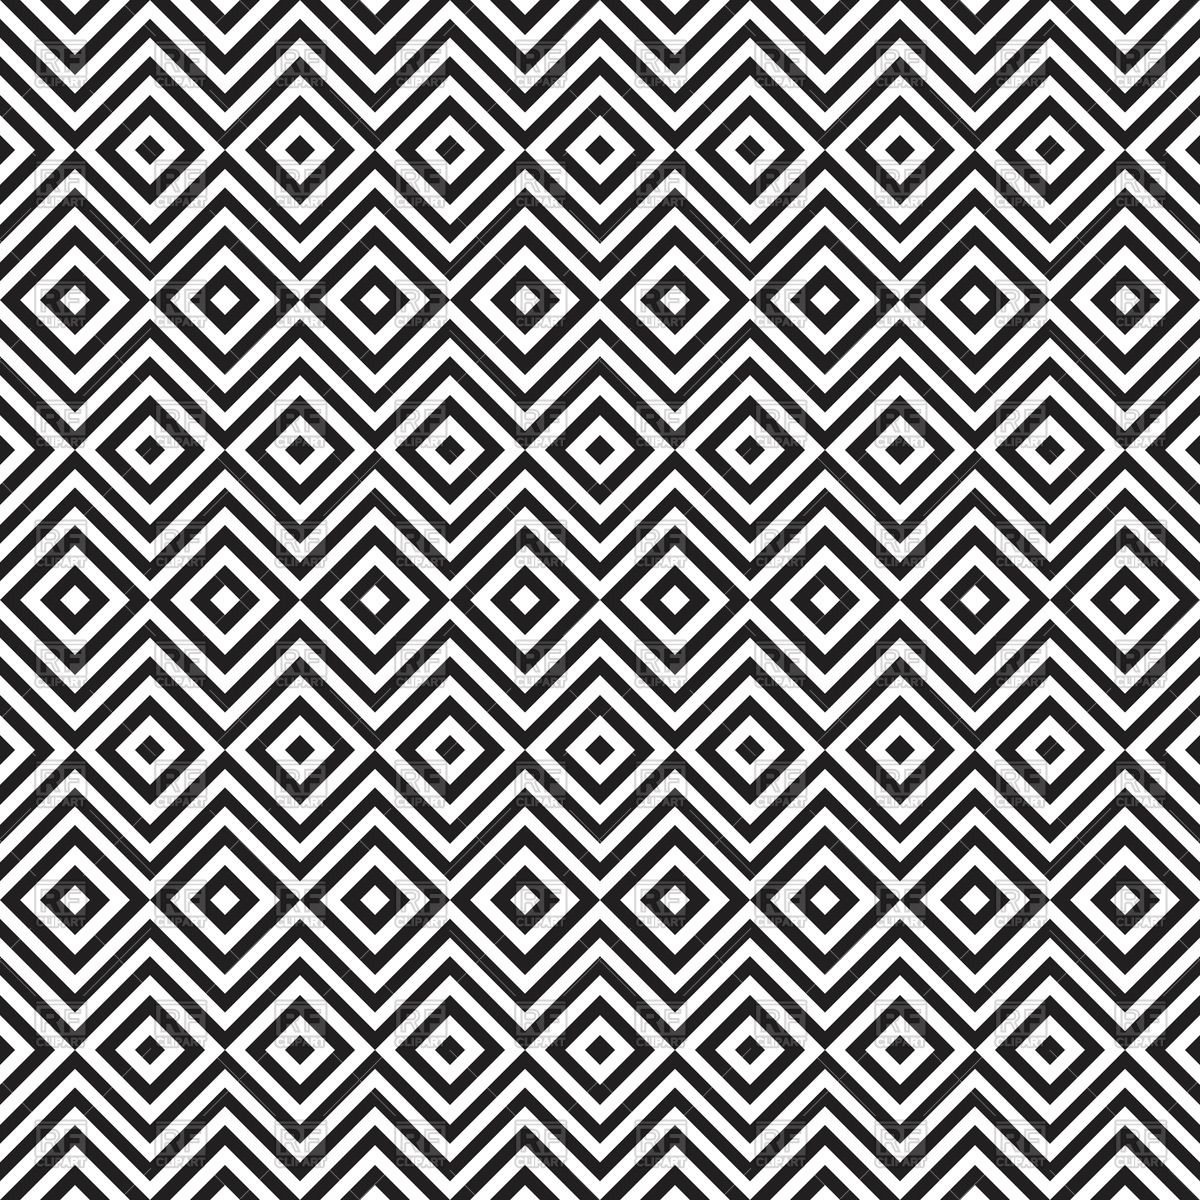 Black And White Zig Zag And Rhombus Seamless Pattern 64200 Download